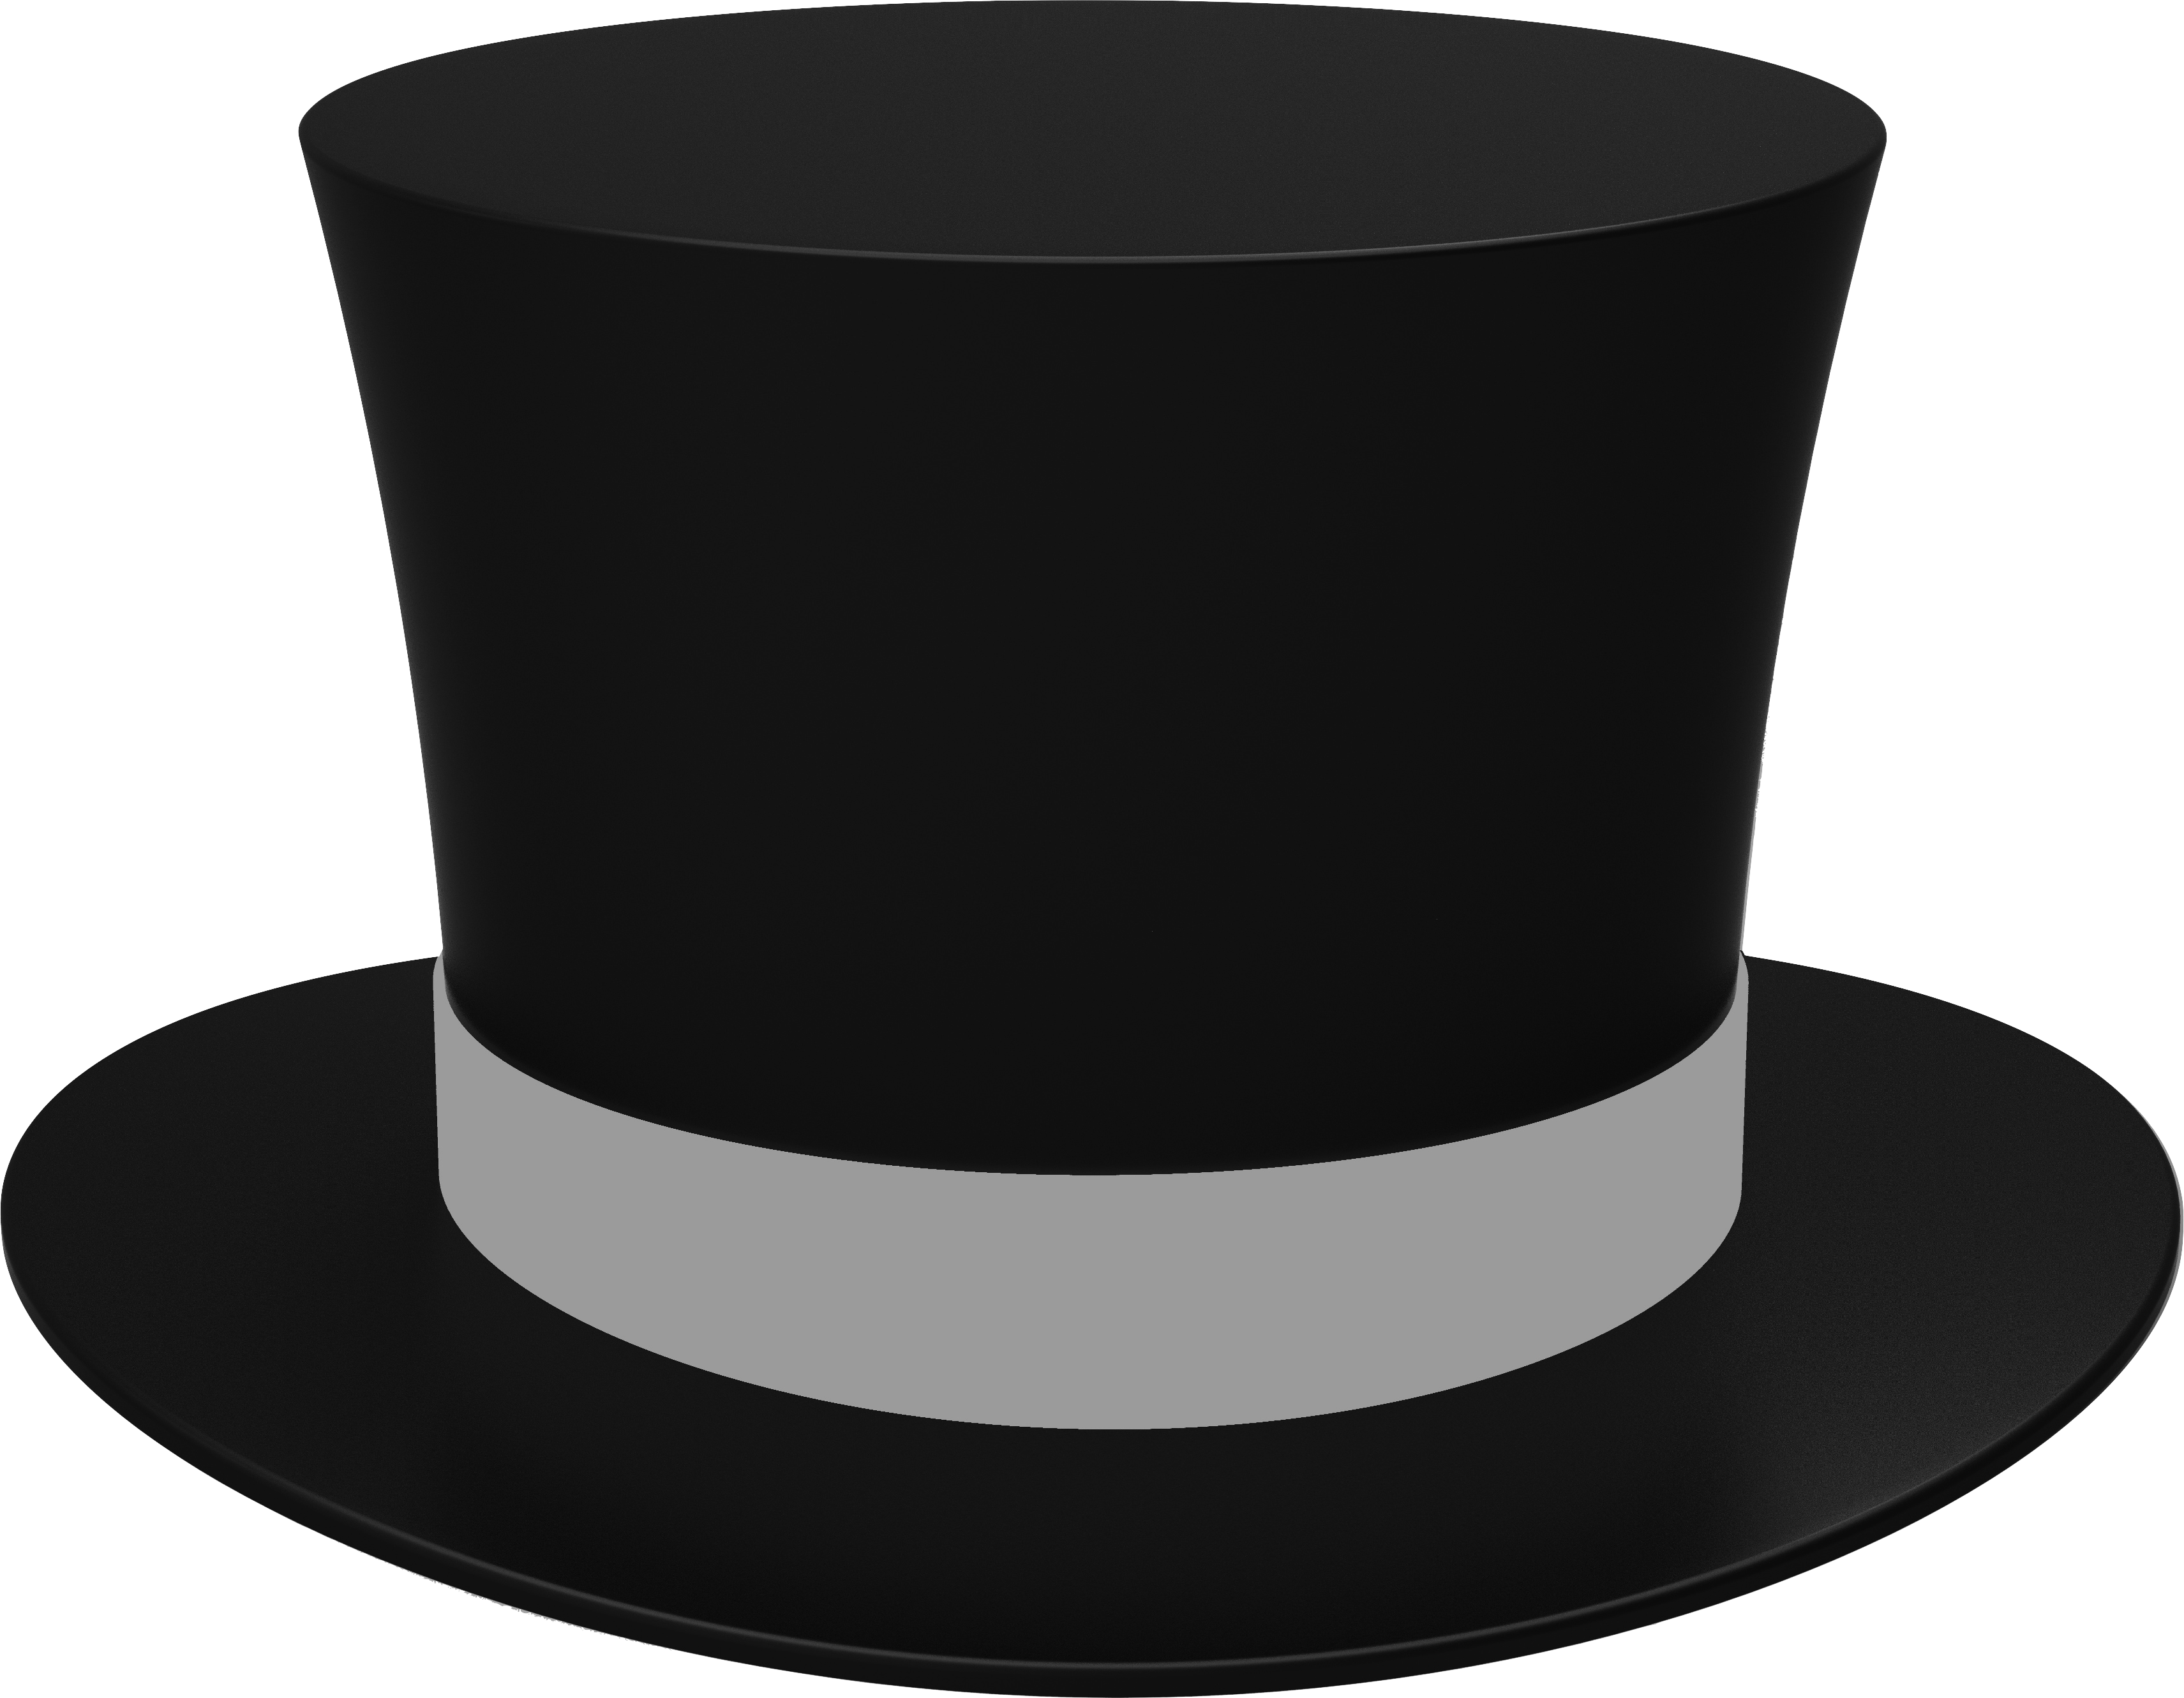 Black Cylinder Hat New Years Hat Hats Png